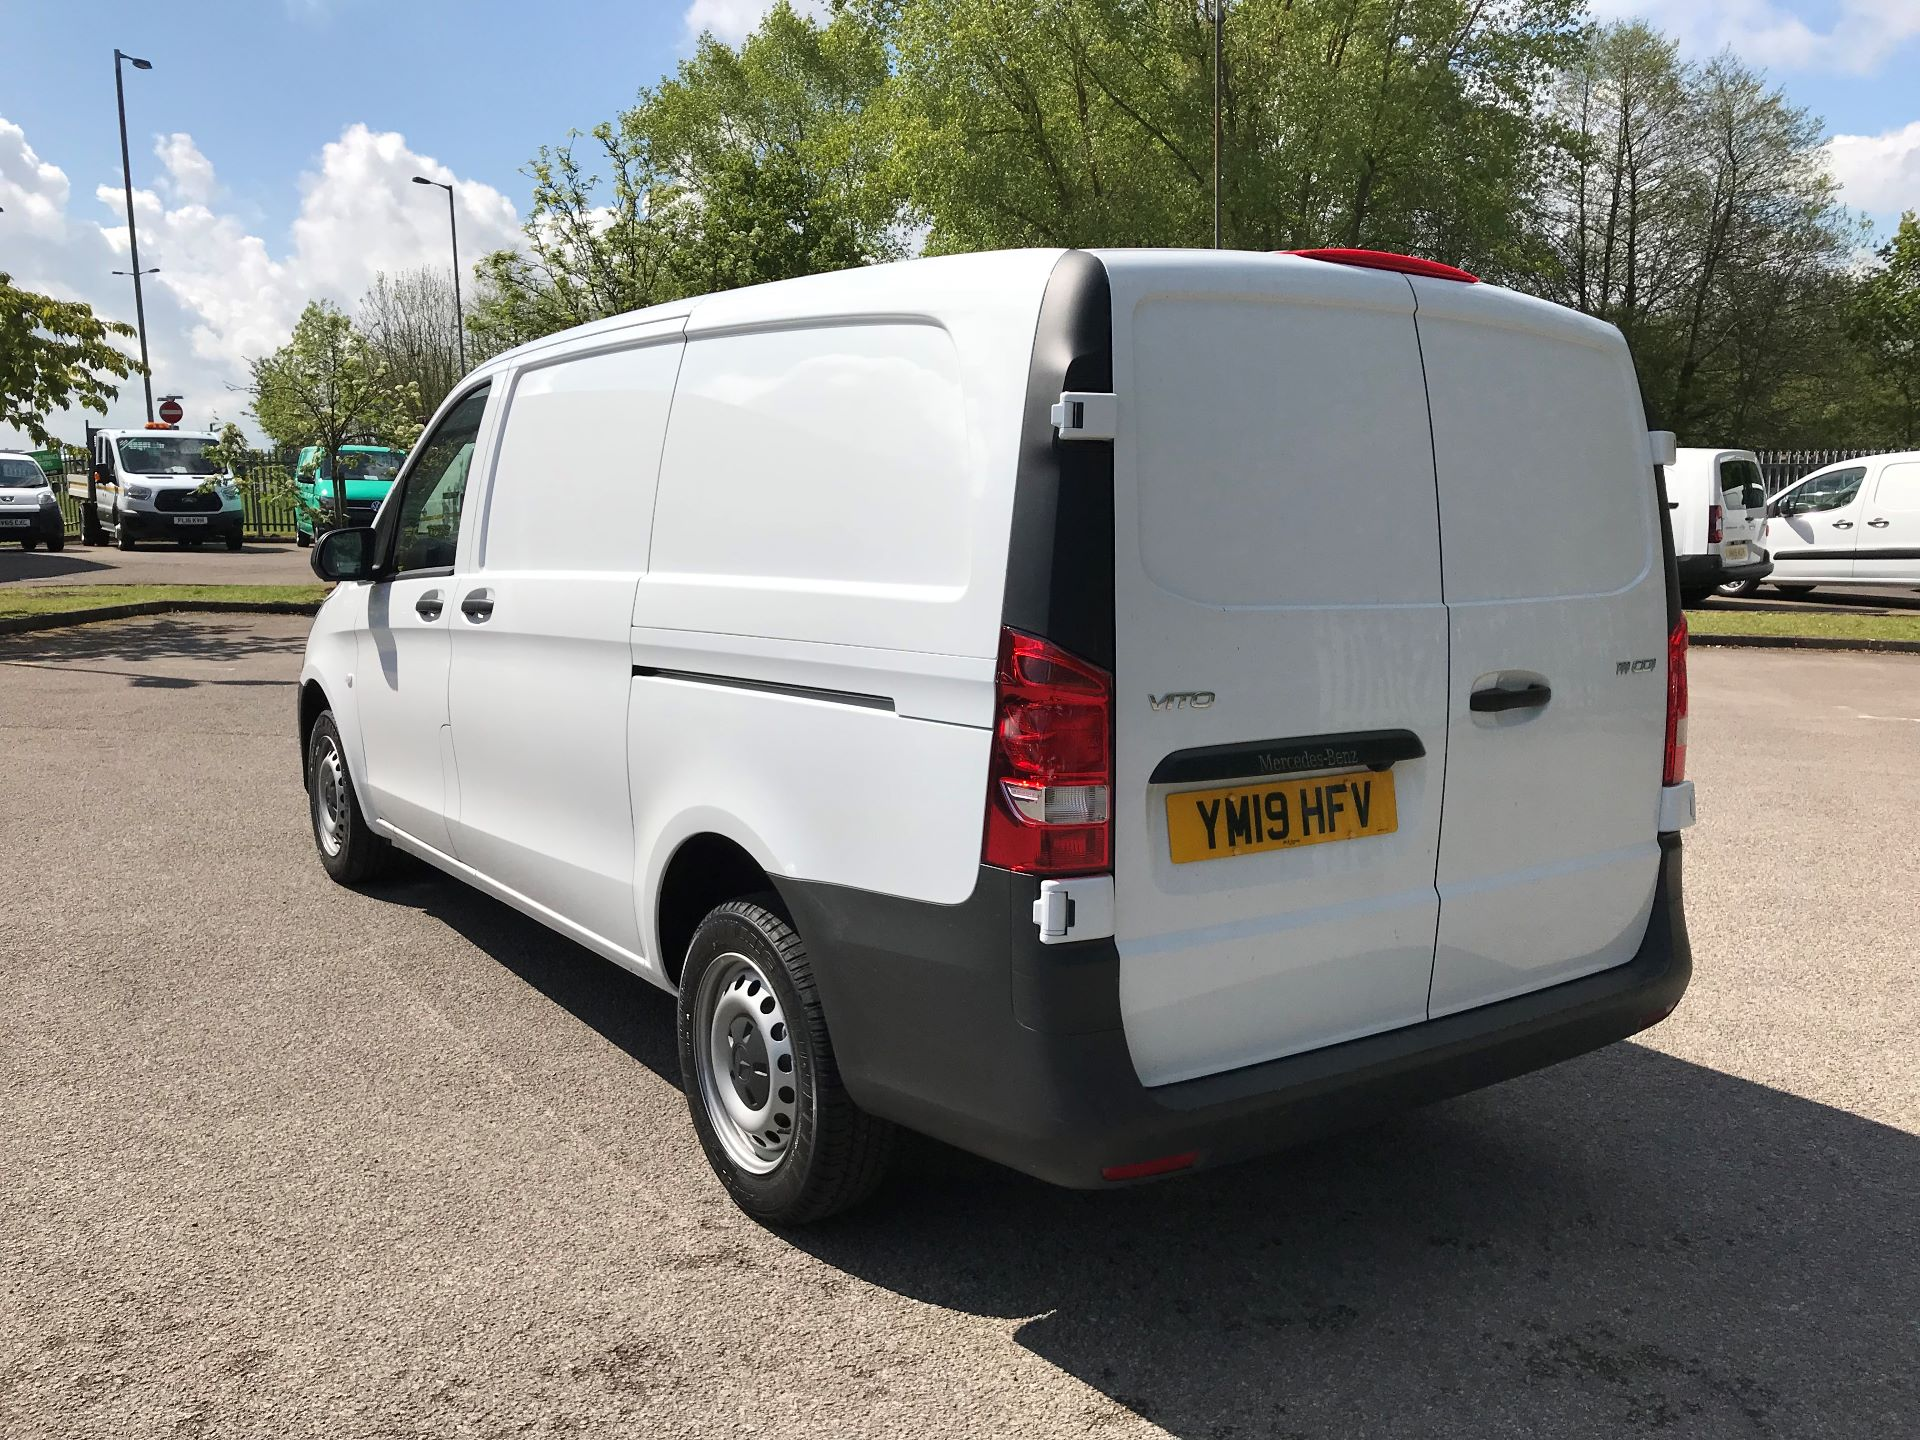 2019 Mercedes-Benz Vito 111Cdi Van Euro 6 Massive specification A/C (YM19HFV) Image 4